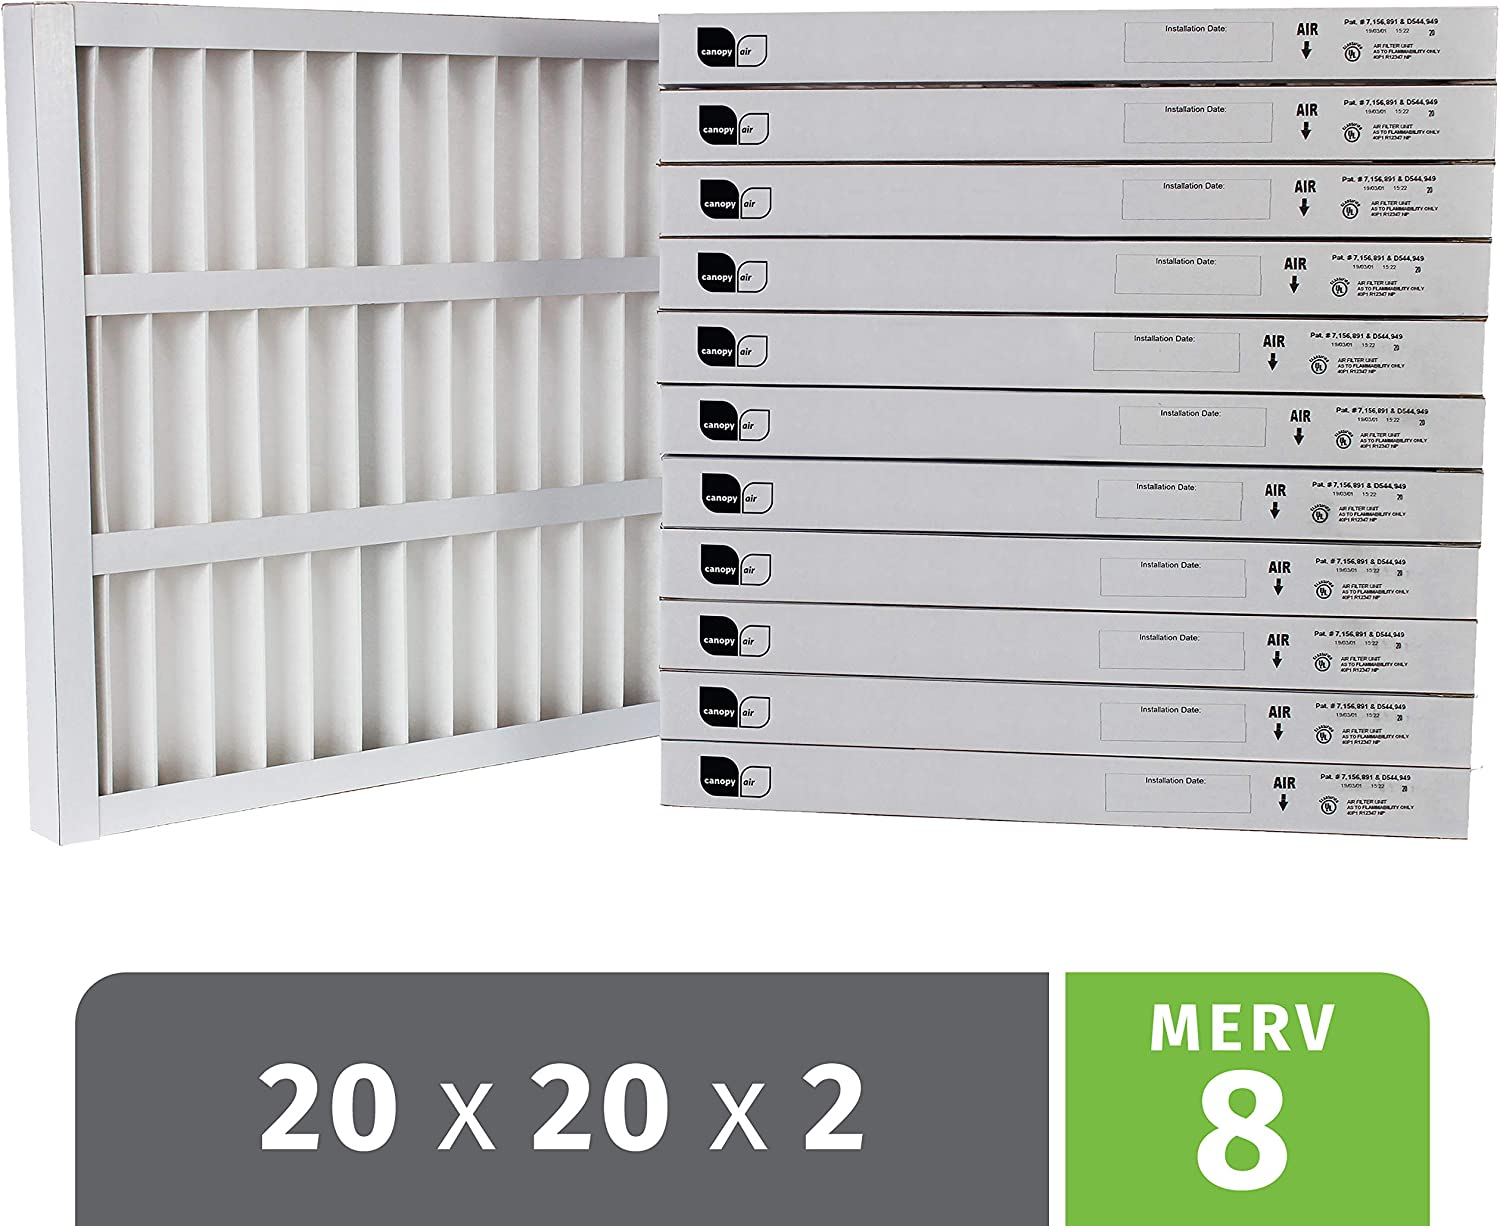 Canopy Air Professional Grade  Self Supported Standard Capacity Pleated Air Filter, Synthetic Media, White, 8 MERV, 100% Metal Free, 20 Height x 20 Width x 2 Depth (Case of 12)